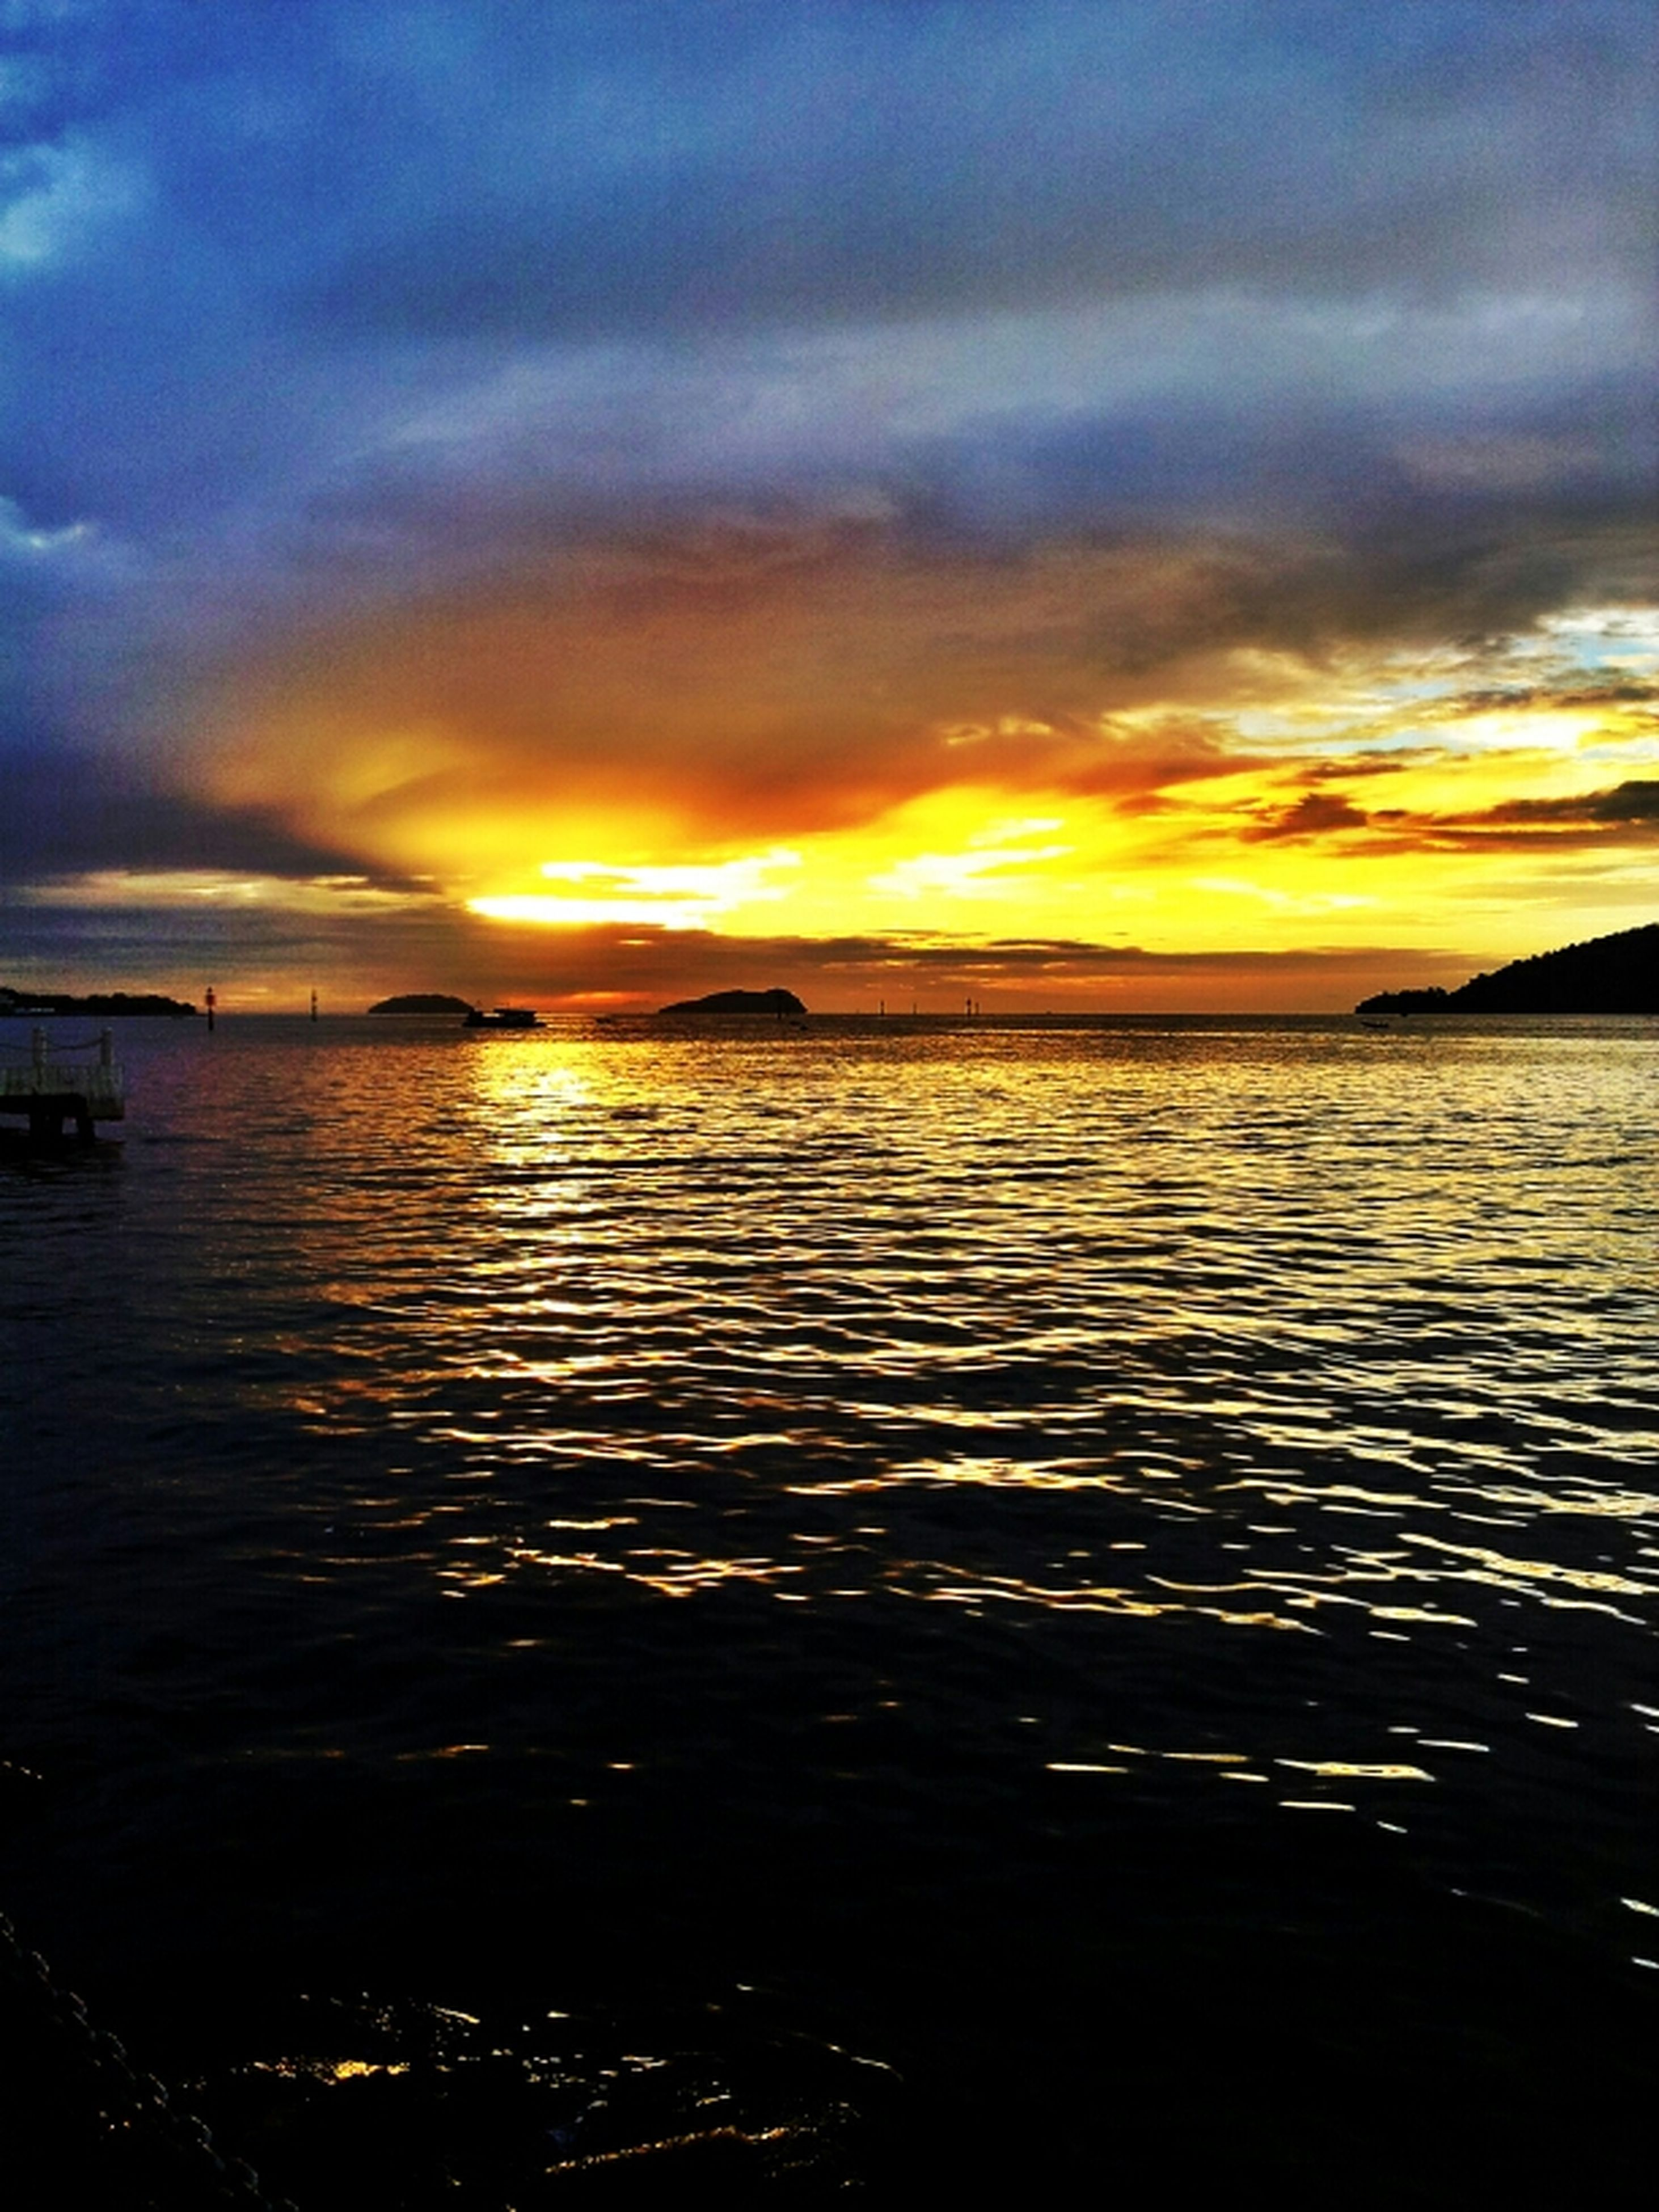 sunset, water, sky, scenics, sea, cloud - sky, tranquil scene, beauty in nature, orange color, tranquility, dramatic sky, idyllic, reflection, nature, cloud, cloudy, silhouette, waterfront, rippled, dusk